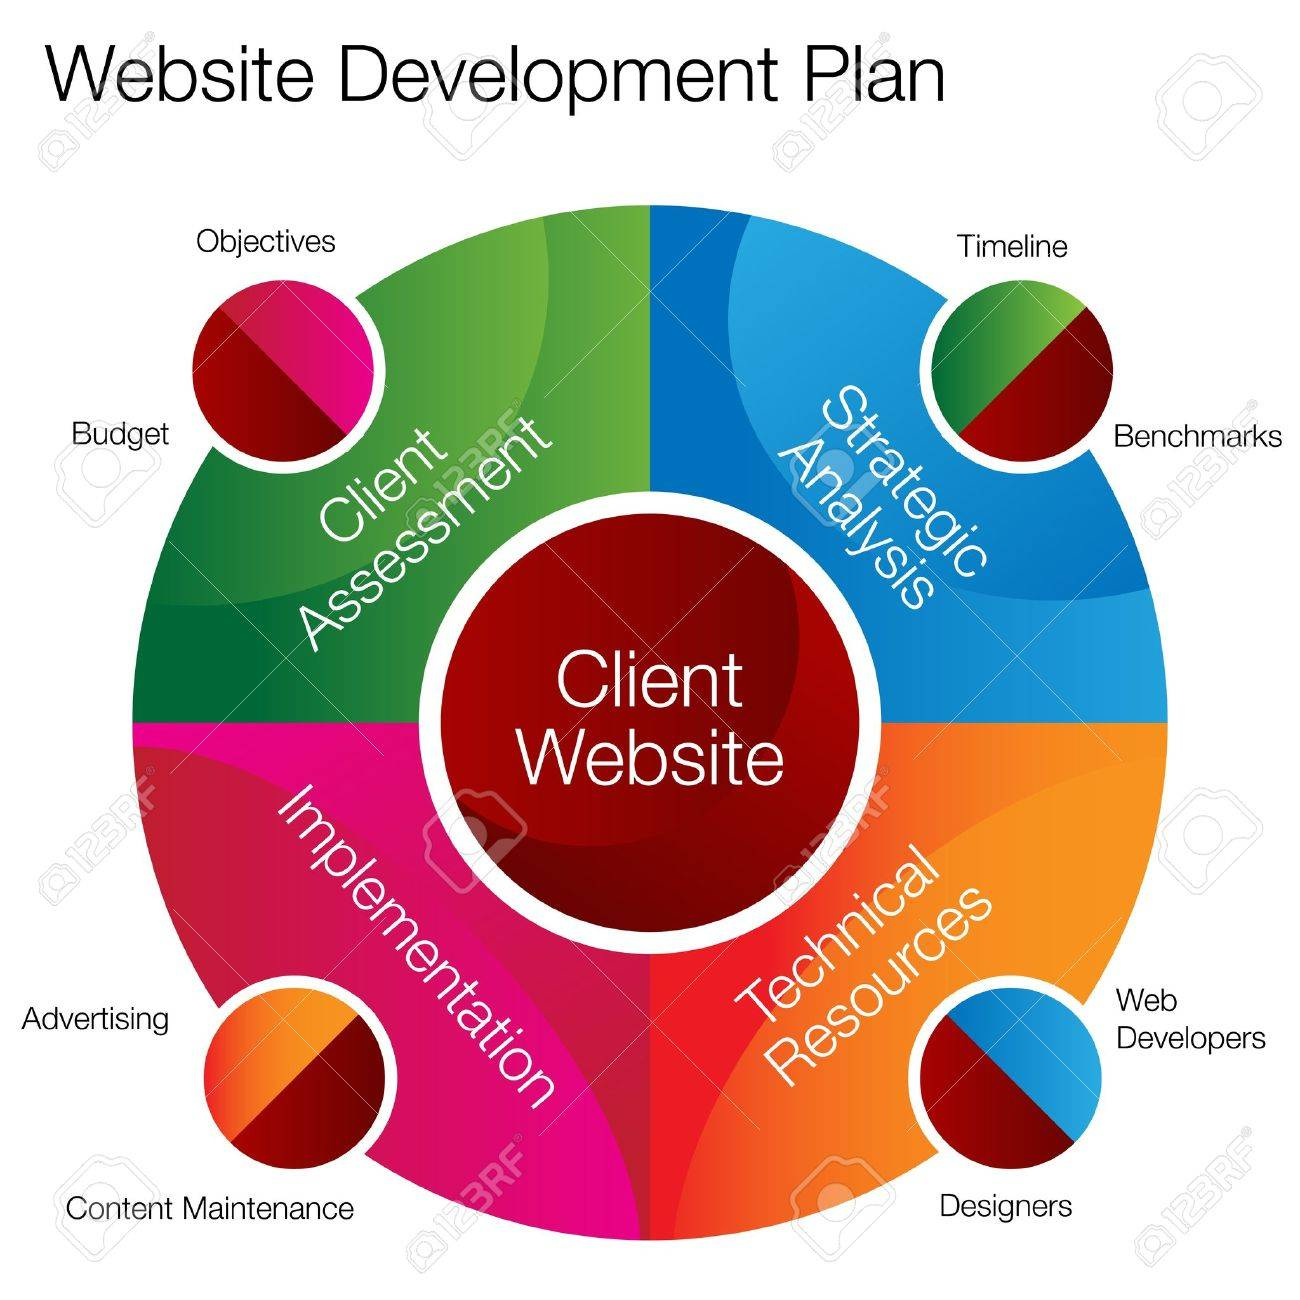 website creation stock photos images 6 063 royalty website website creation an image of a website development planning chart